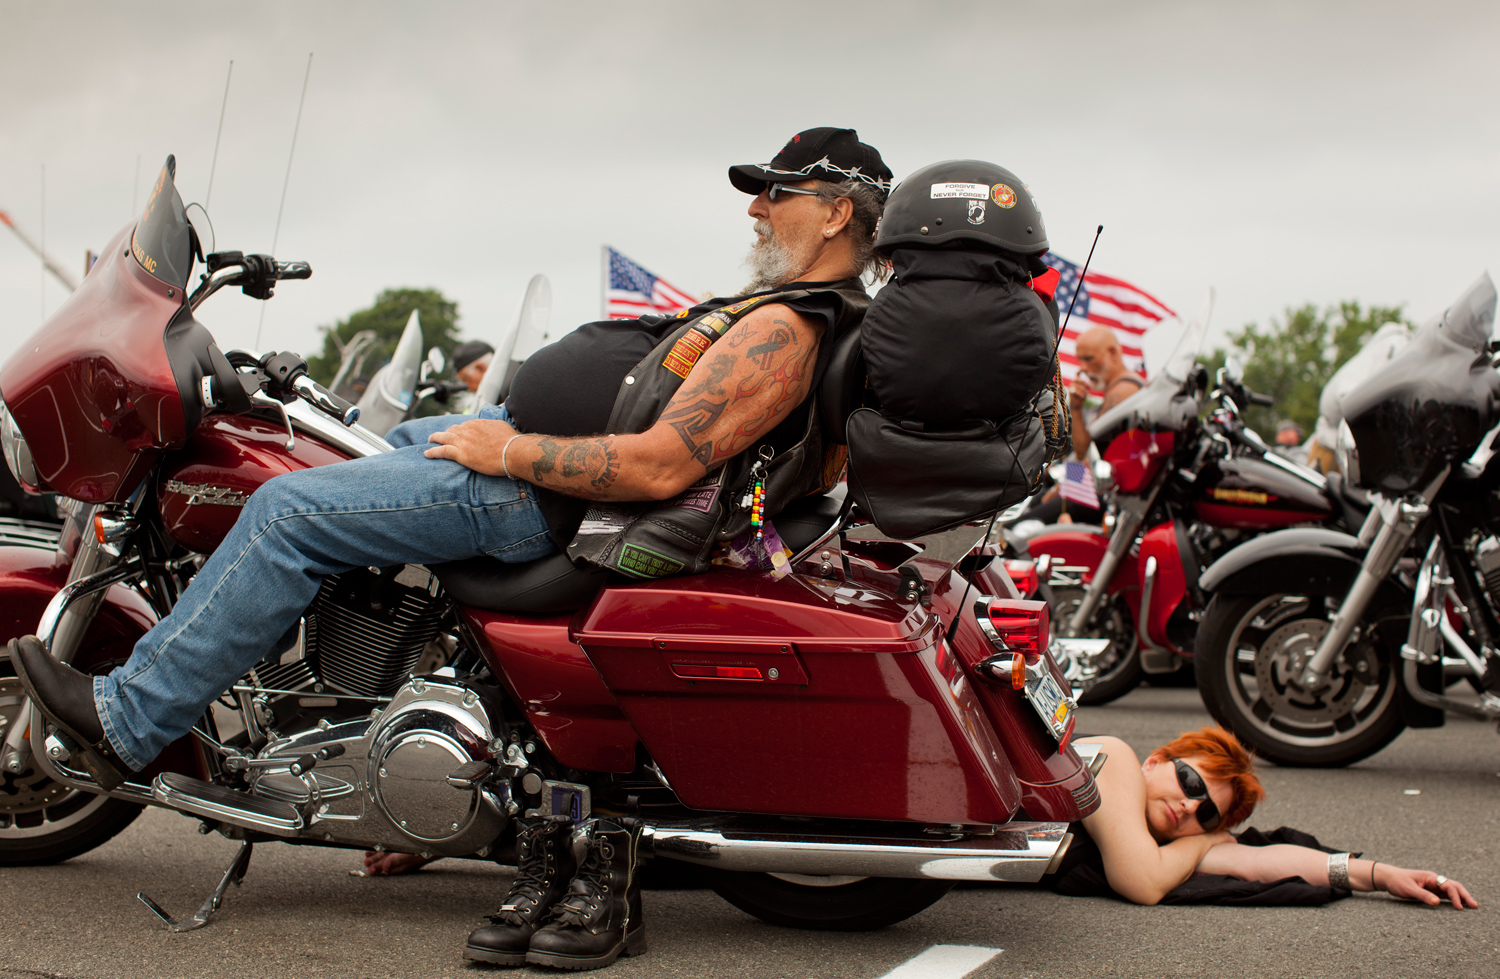 Bikers waiting for the start of the Rolling Thunder rally in Washington, DC. Sunday, May 29, 2011.